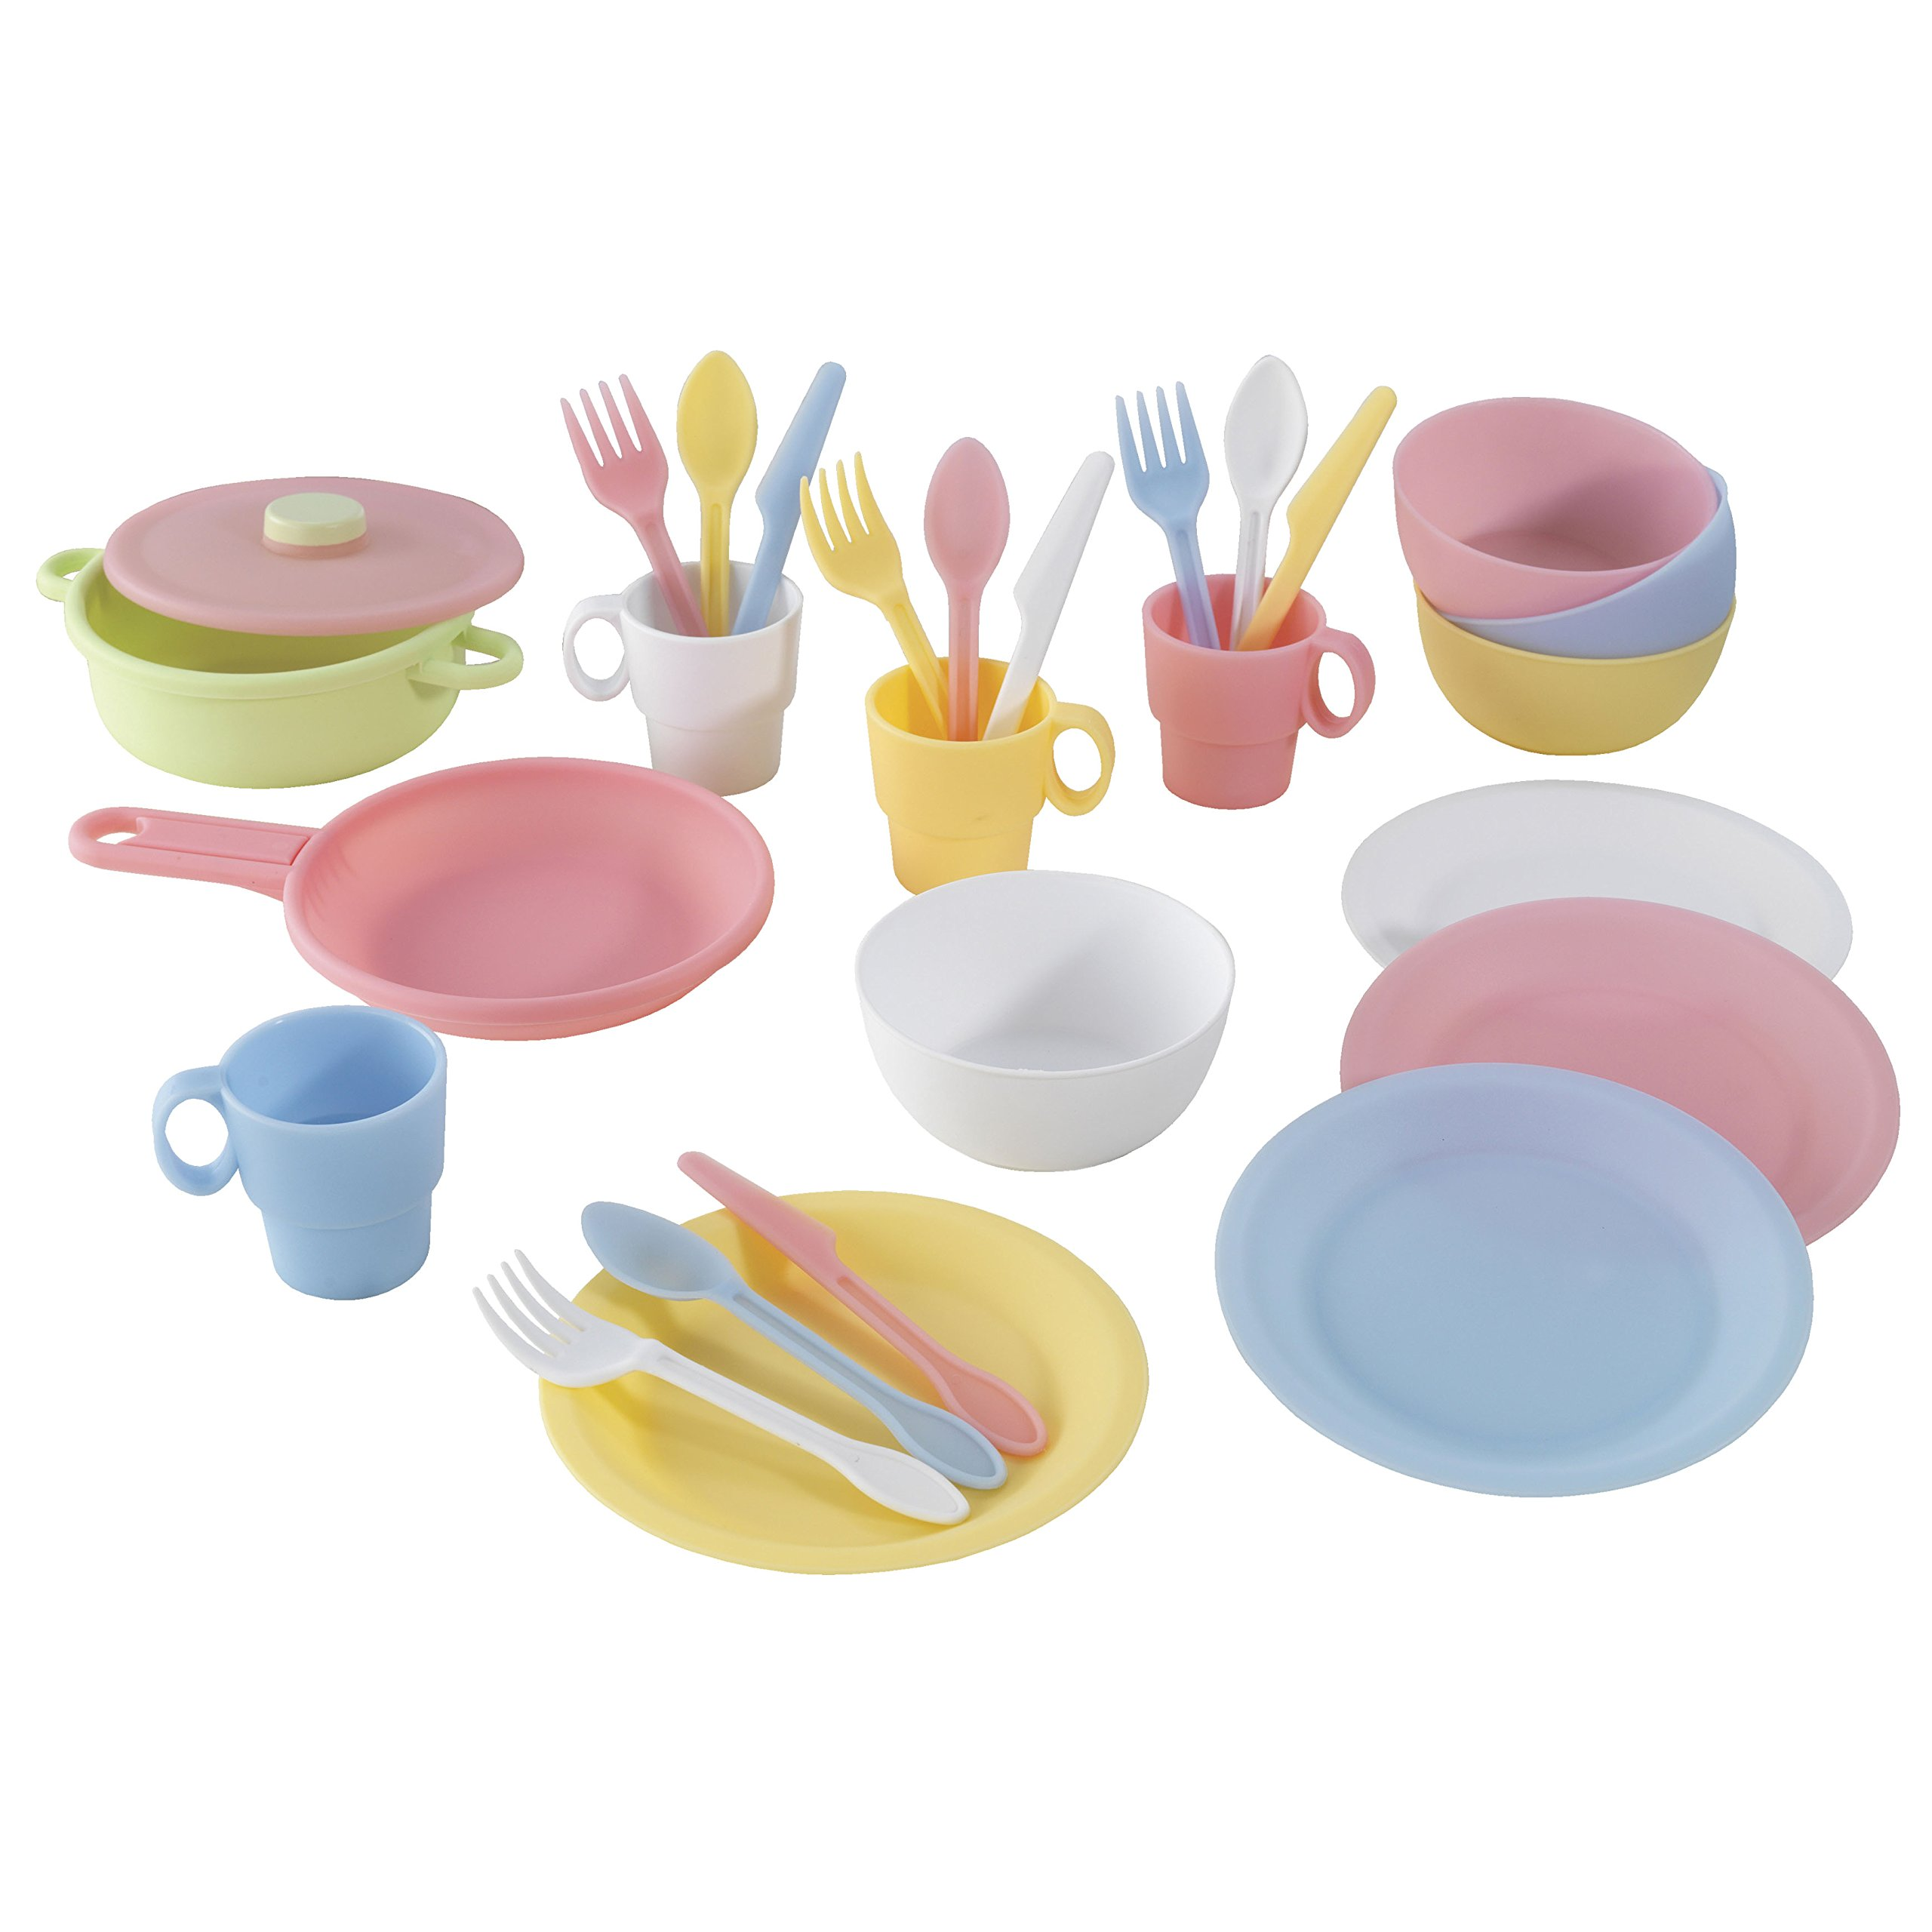 KidKraft 27pc Cookware Set - Pastel by KidKraft